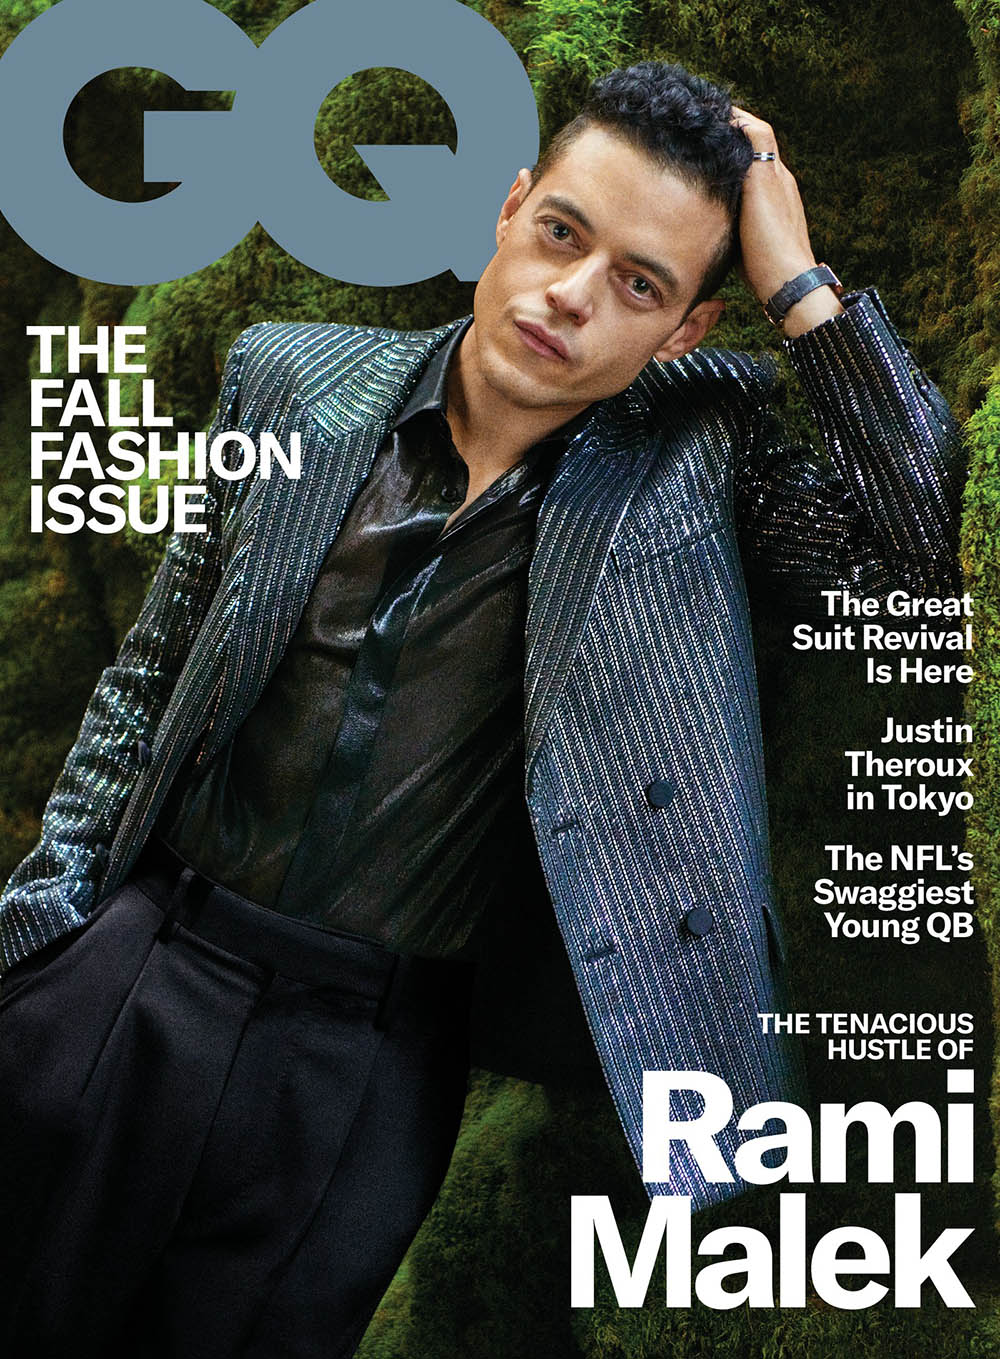 Rami Malek covers GQ USA September 2019 by Ryan McGinley